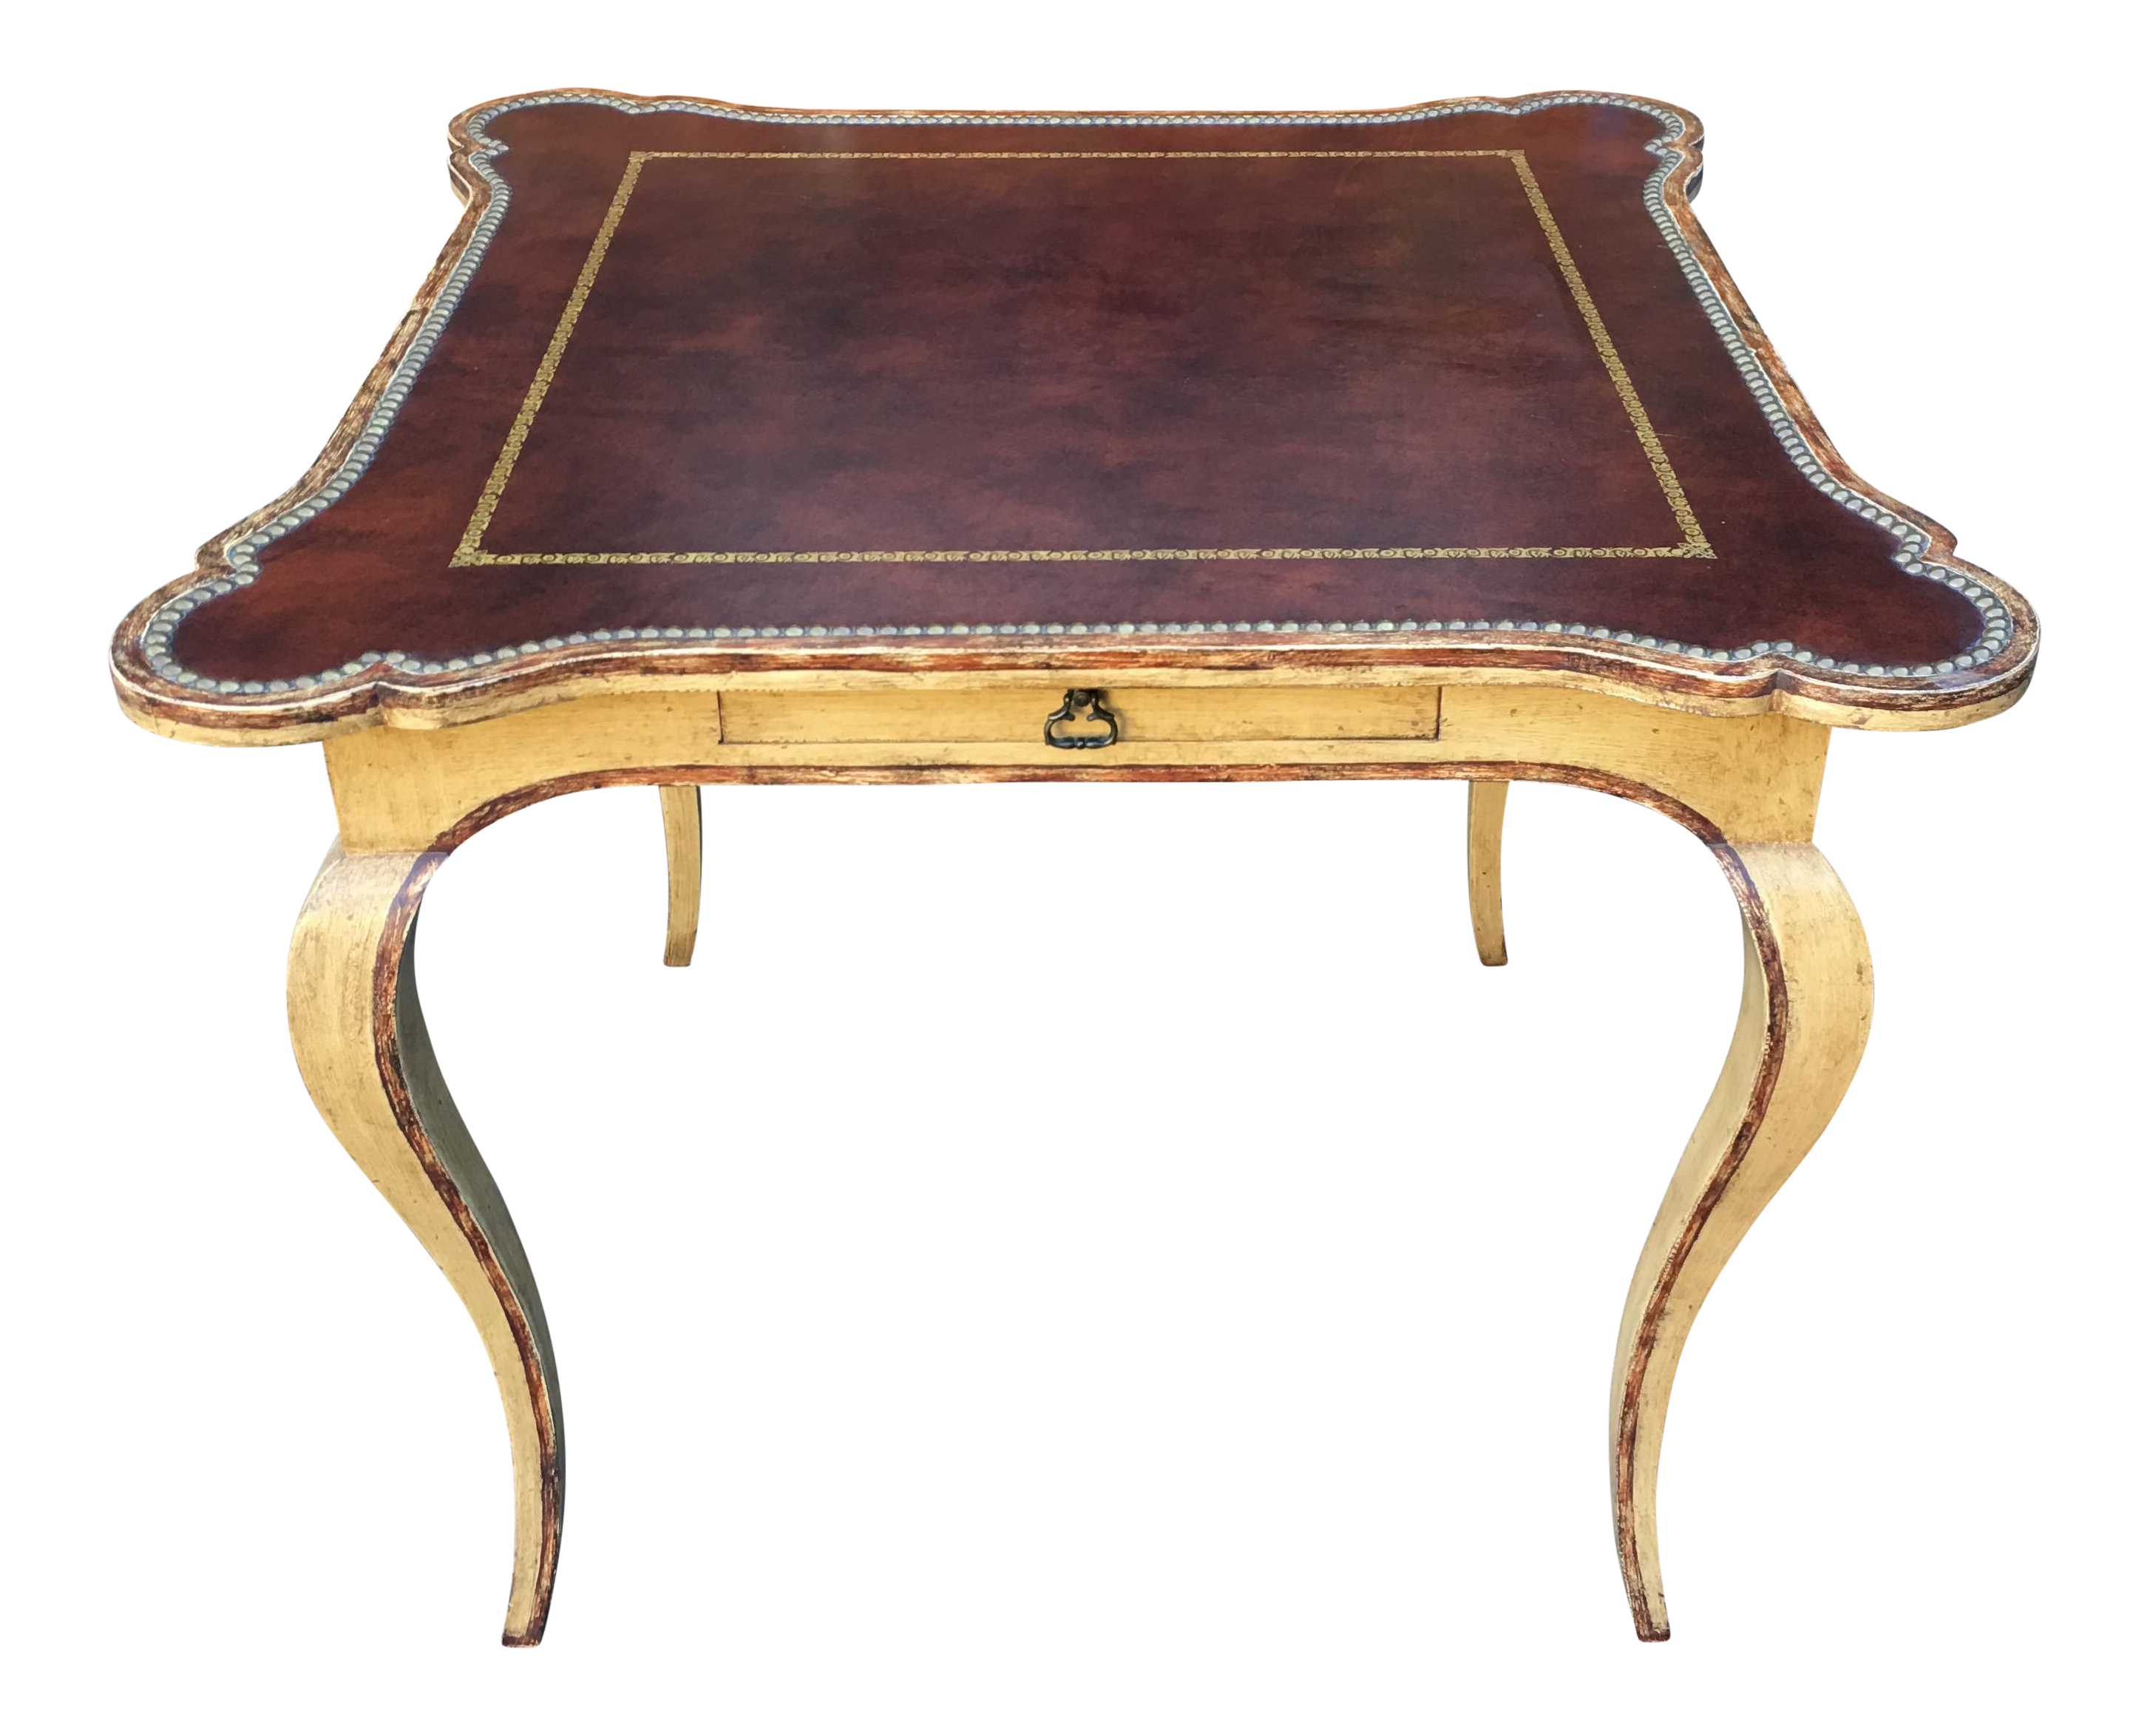 Superb Minton Spidell Leather Top Card Or Game Table